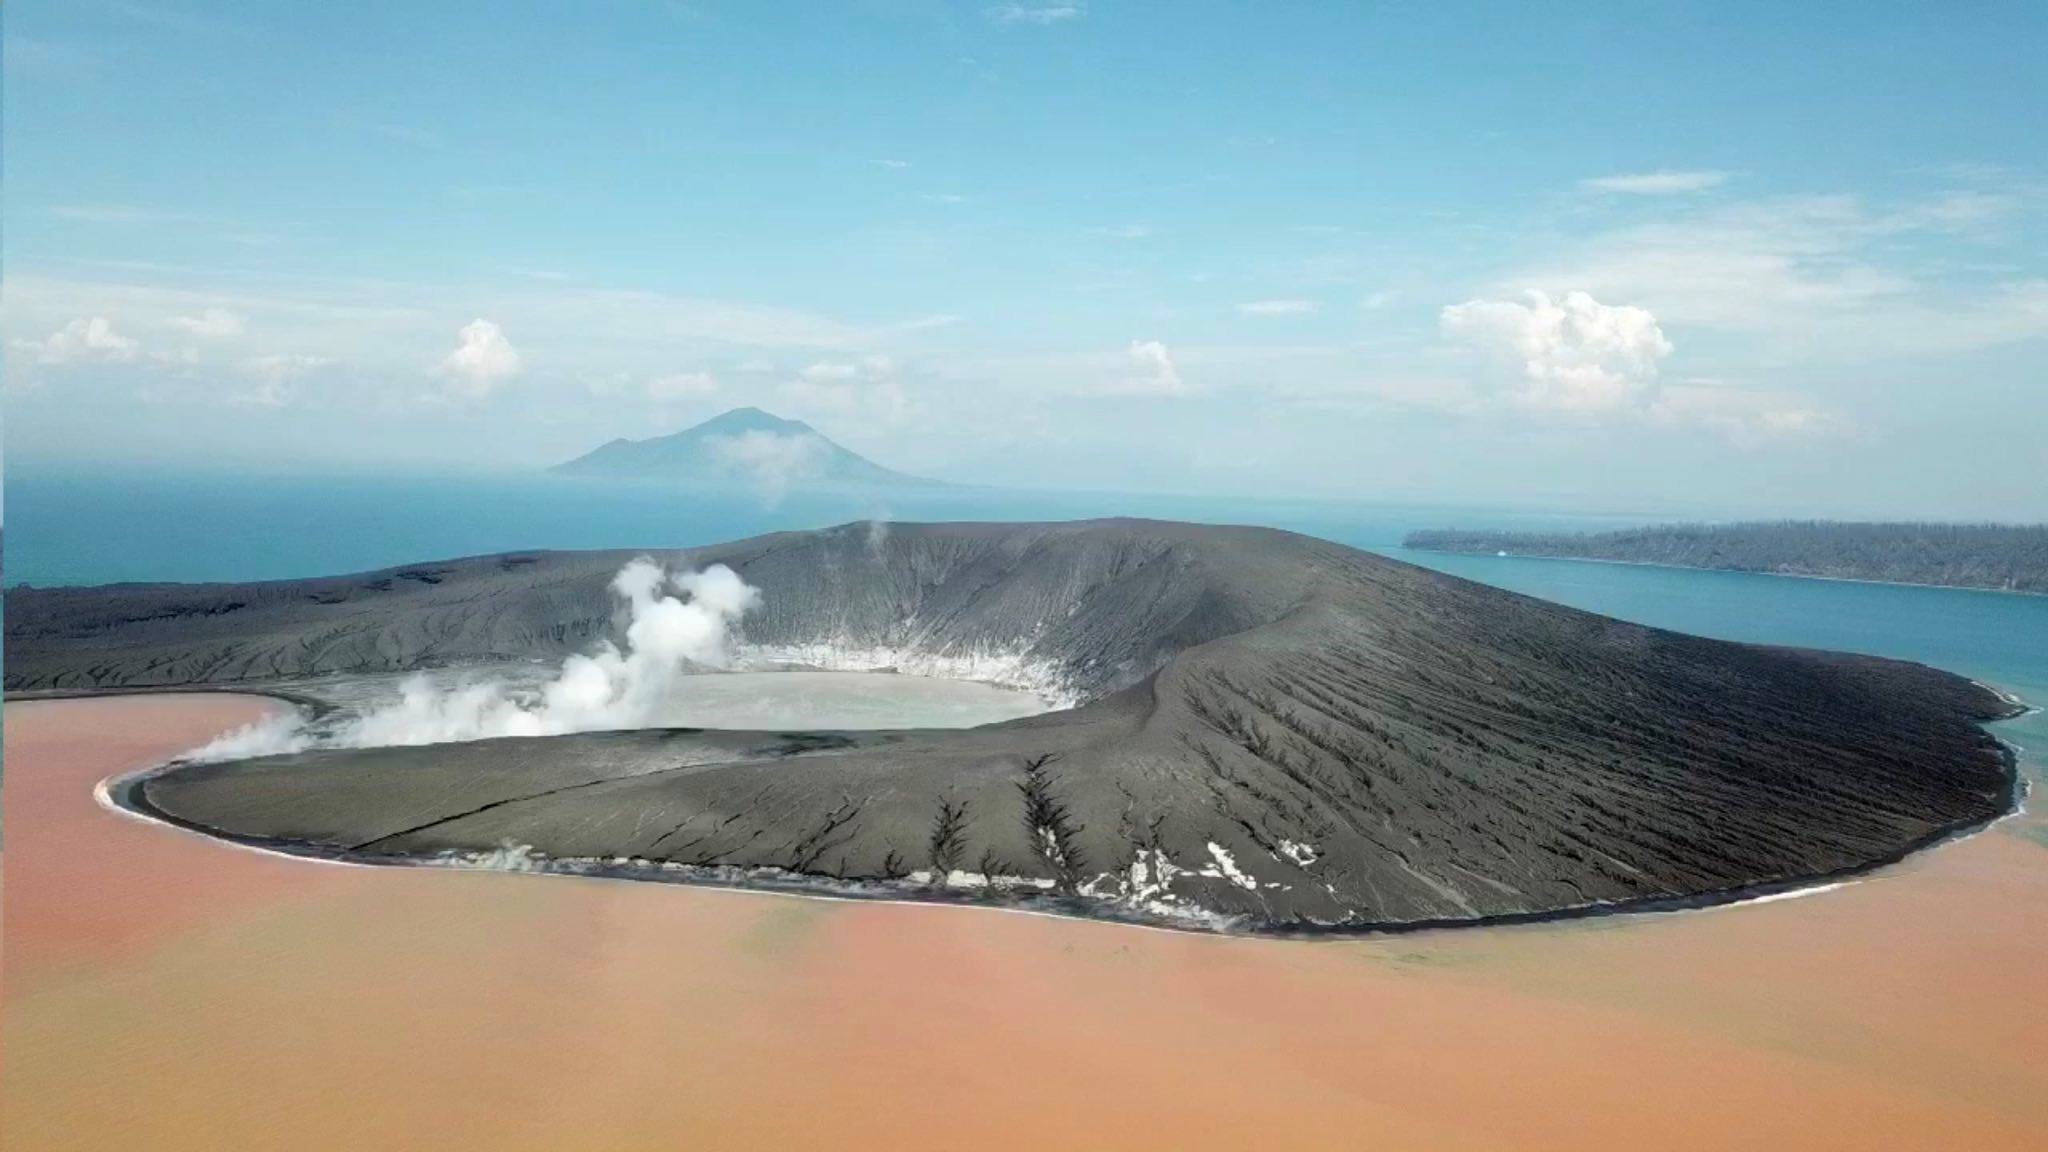 April 23, 2019 . EN . Indonesia : Anak Krakatau , Kamchatka : Sheveluch , Chile : Nevados of Chillan , Guatemala : Santiaguito .